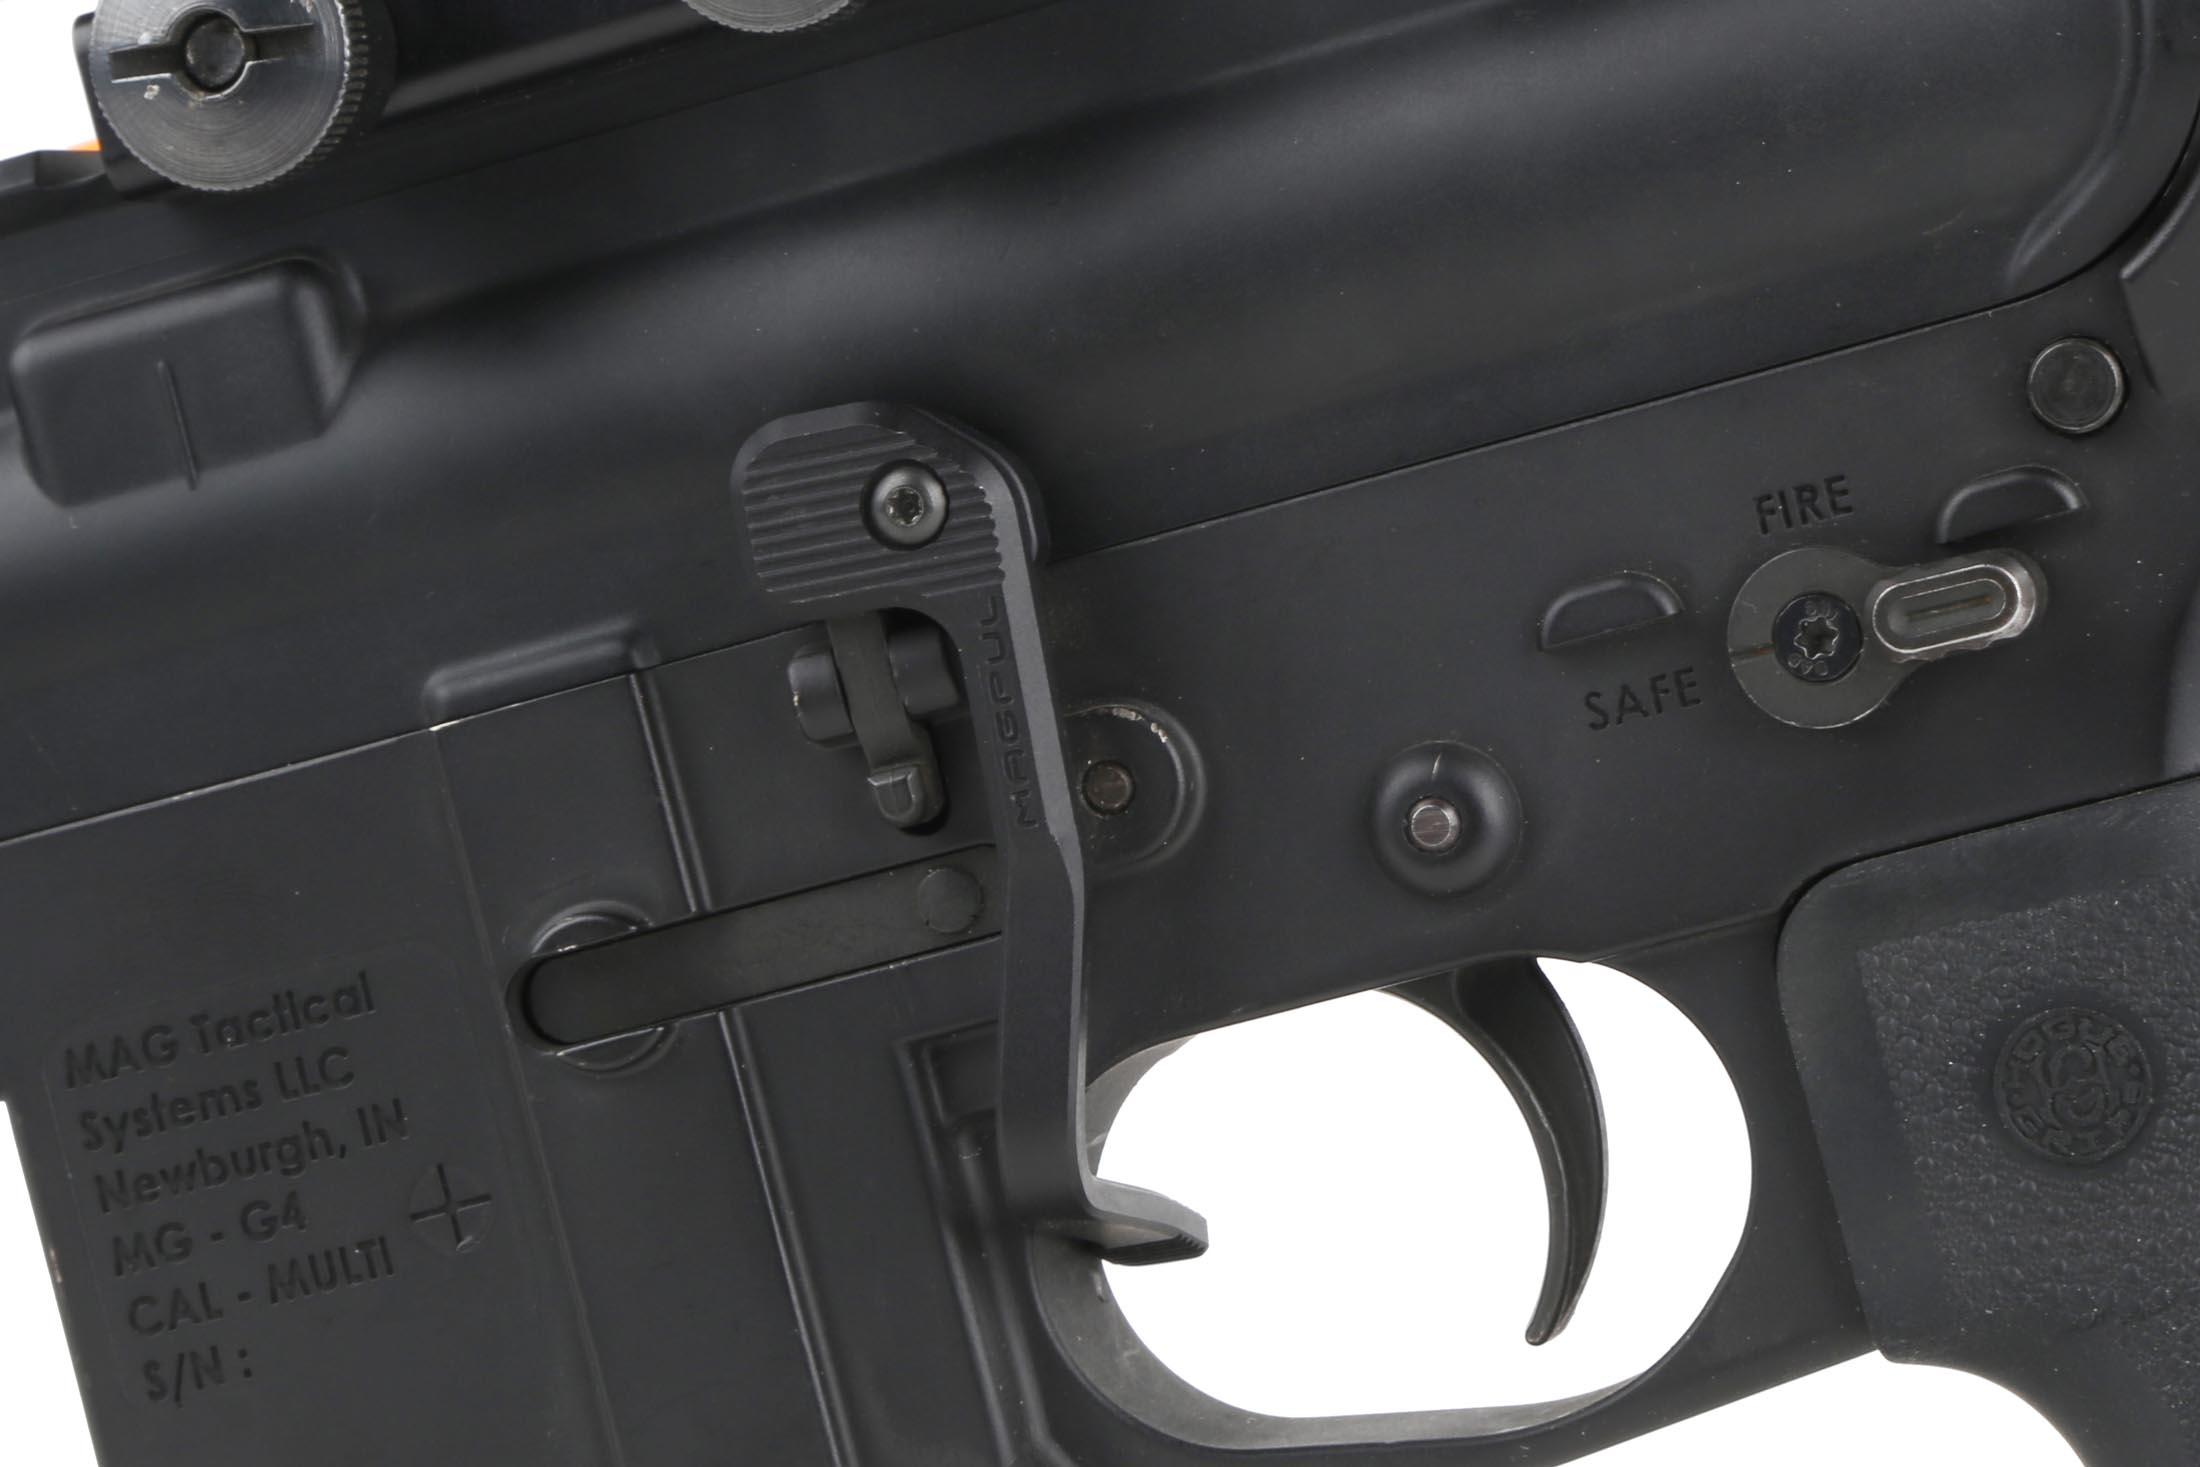 Magpul B.A.D. Lever - Battery Assist Device is designed to considerably improve the AR-15/M16 bolt catch.